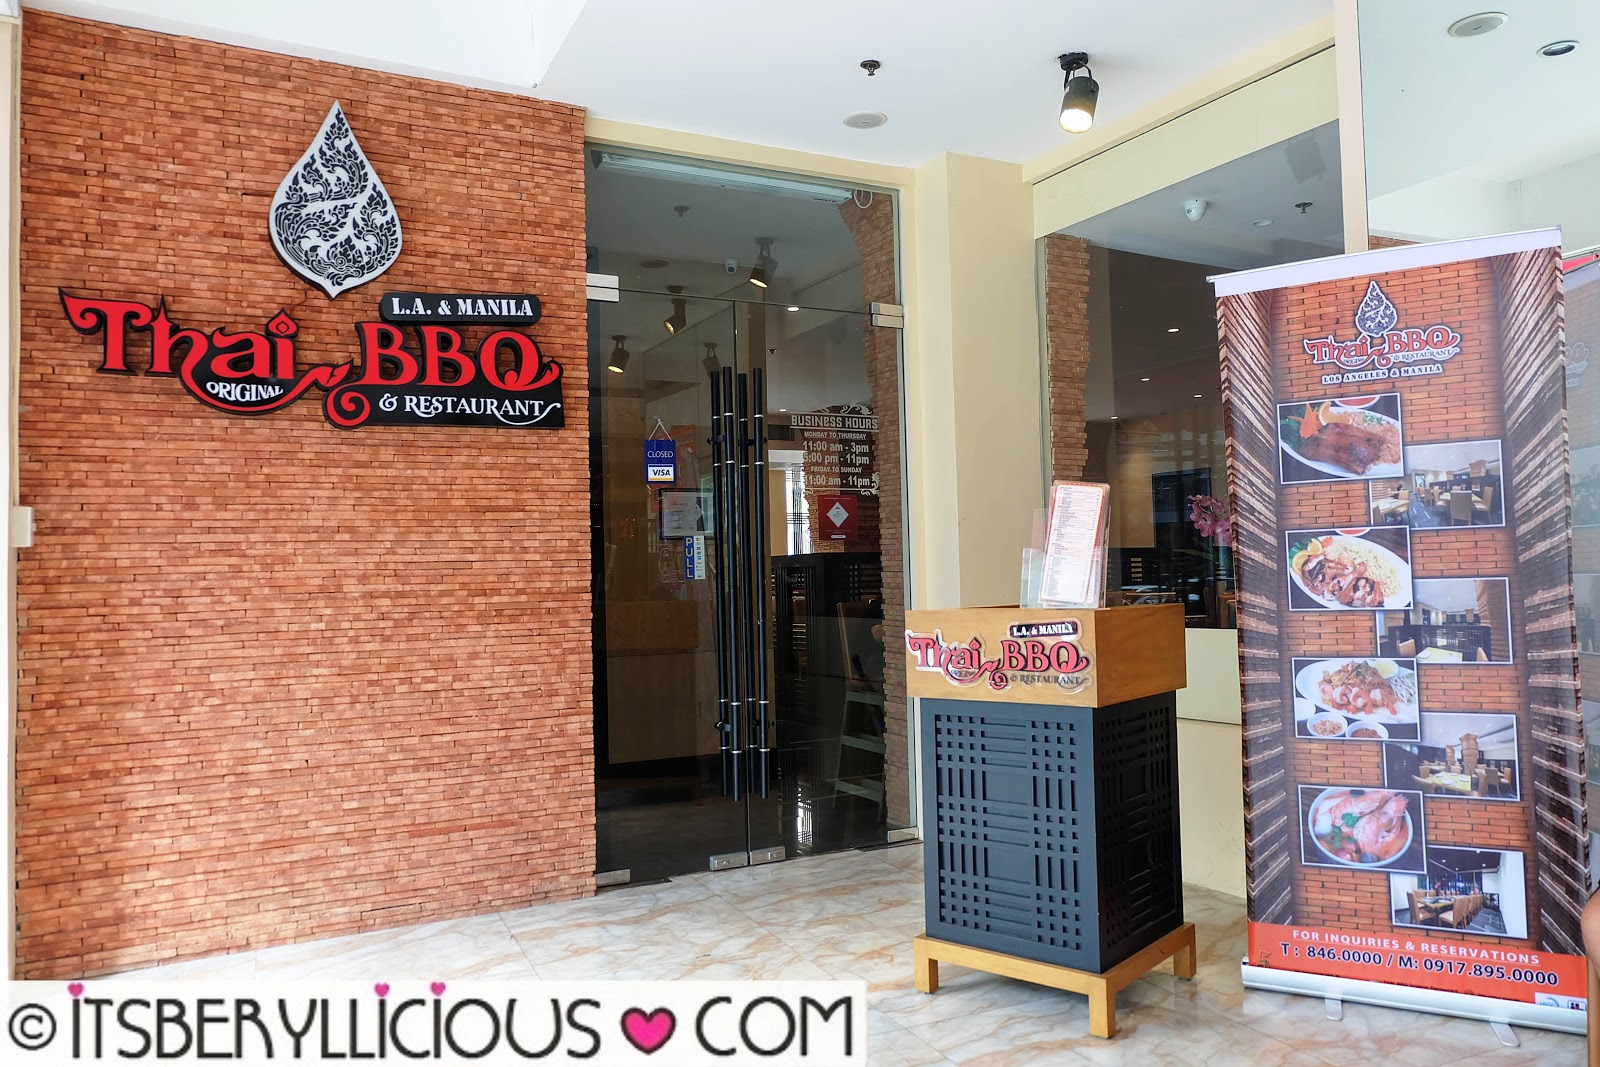 Located at The Fort Entertainment Complex in BGC Thai BBQ opened its doors last November and has recently been awarded as Thai Select for authentic Thai ... & Thai Original BBQ u0026 Restaurant L.A. to Manila: Family-Style House ...